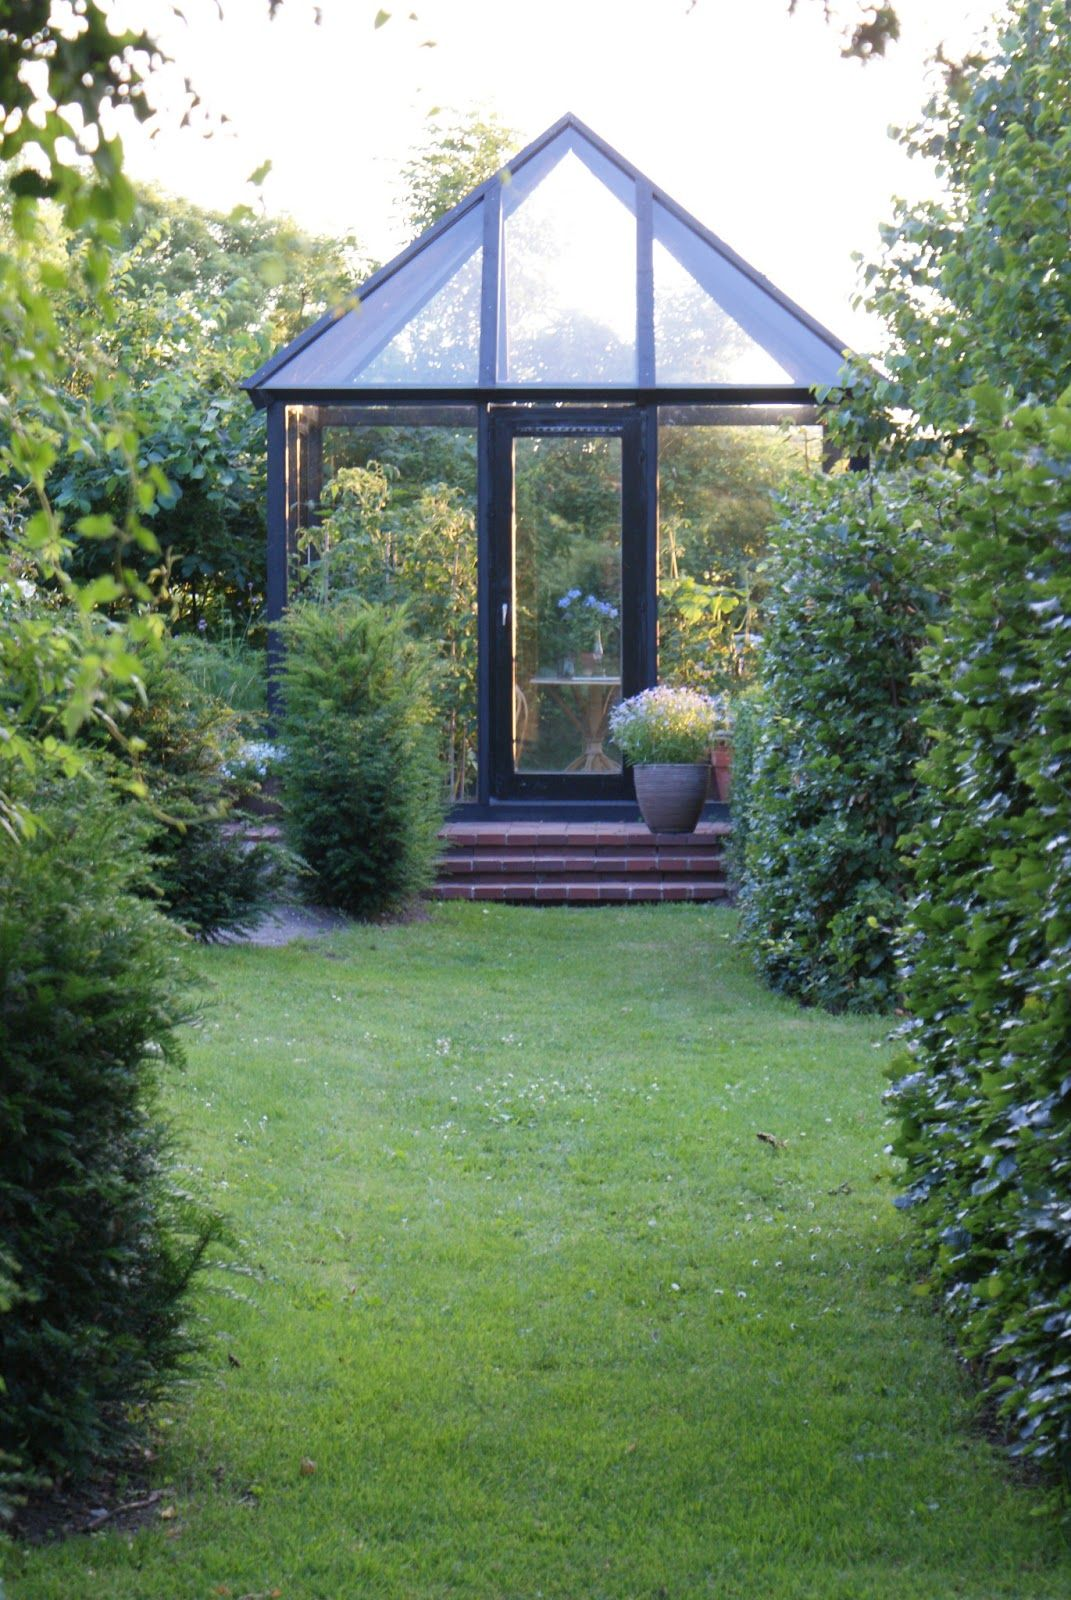 lush landscaping ideas. Small Greenhouse In Lush Landscape. Landscaping Ideas I